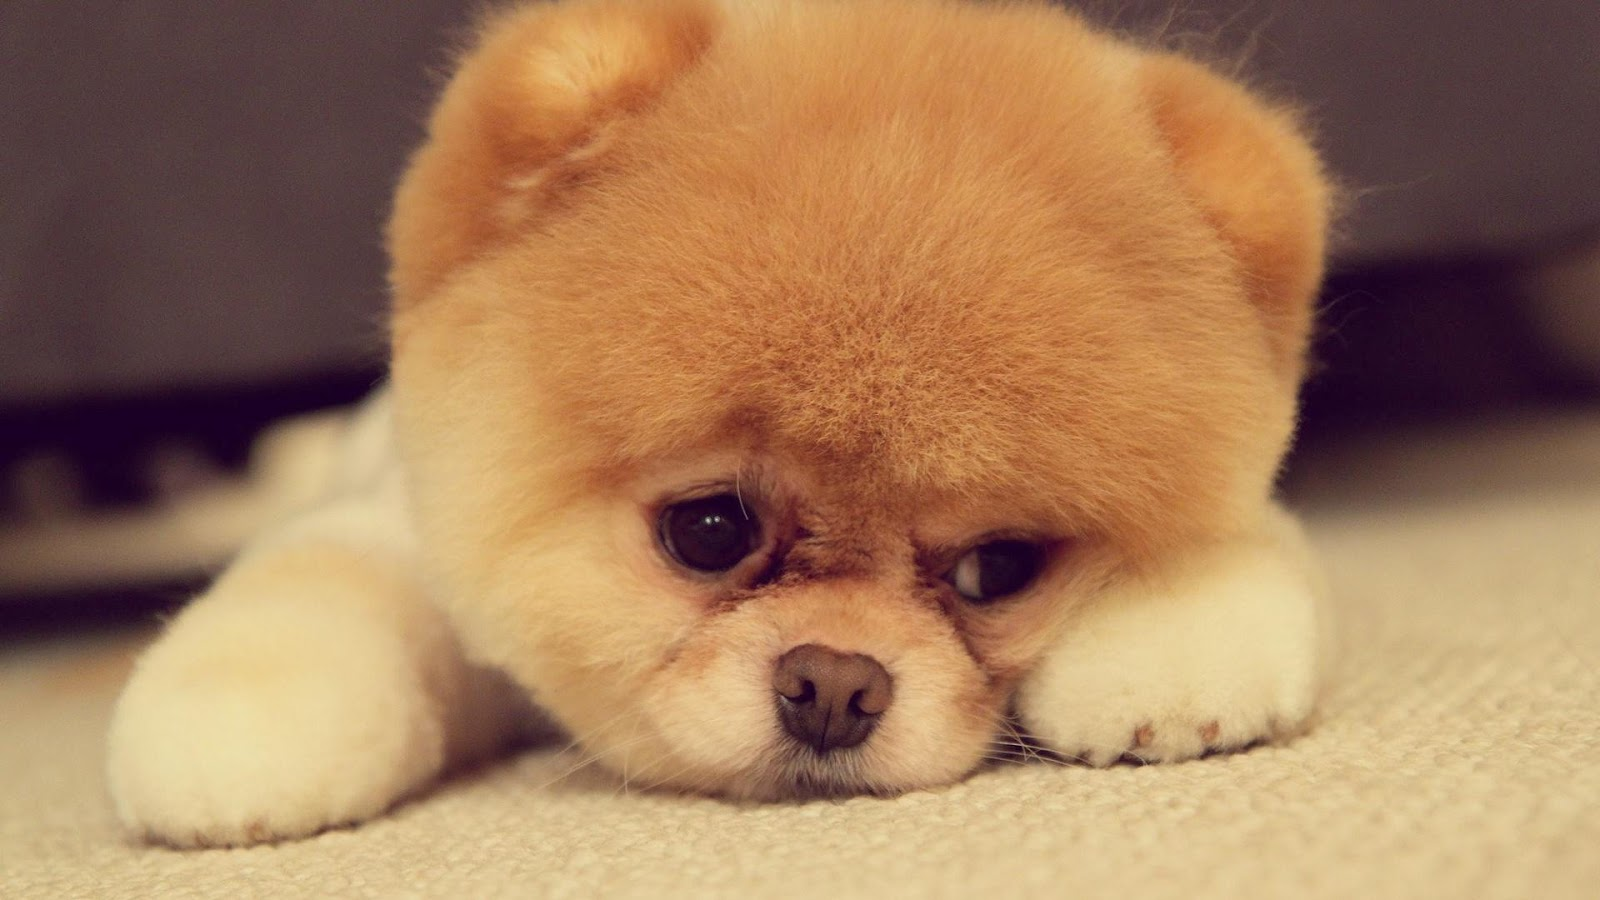 Cute Puppy Pictures - Android Apps on Google Play